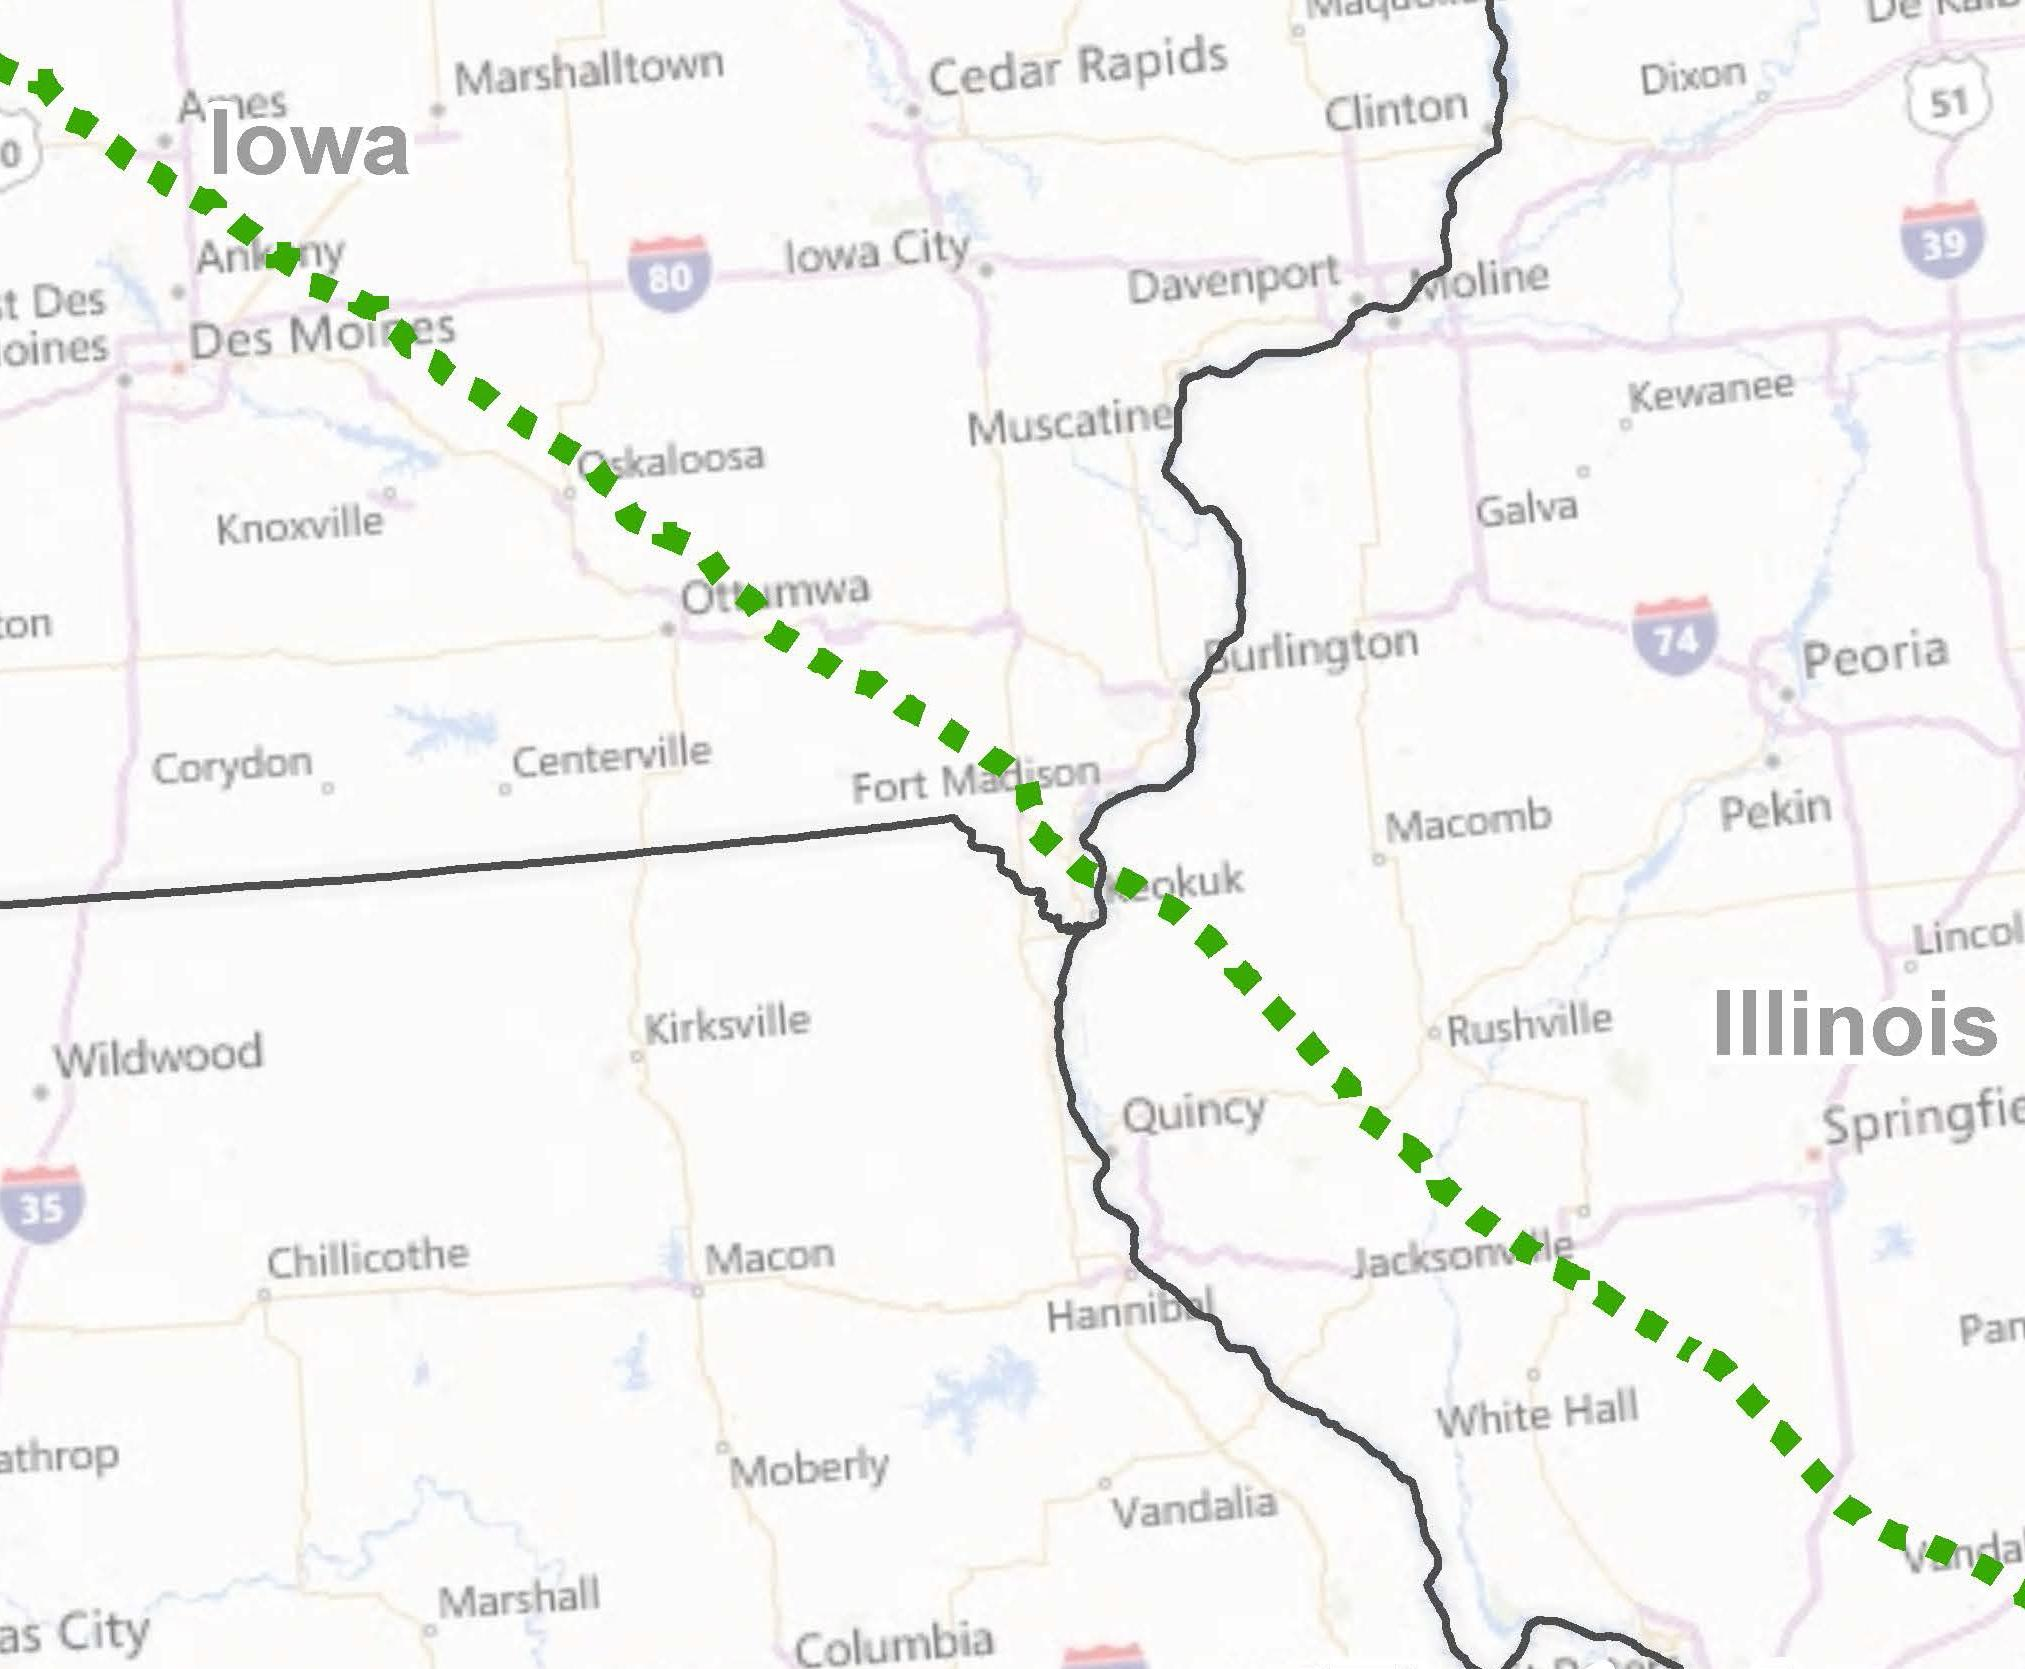 Little Known about Proposed Pipeline Through Illinois and ... on map of illinois cities, map of west virginia and tennessee, map of iowa freedom rock in the tour, map of iowa small towns, iowa state map illinois, map of bridges of madison county iowa, map of iowa online, map of quad cities and surrounding area, map of dubuque iowa, map of church camps in illinois, big map of illinois, map of iowa casinos, street map clinton illinois, map of quincy illinois, map of iowa print, map of missouri, map of the state of iowa, oakland city hall illinois, map of minnesota iowa border, map of iowa counties,